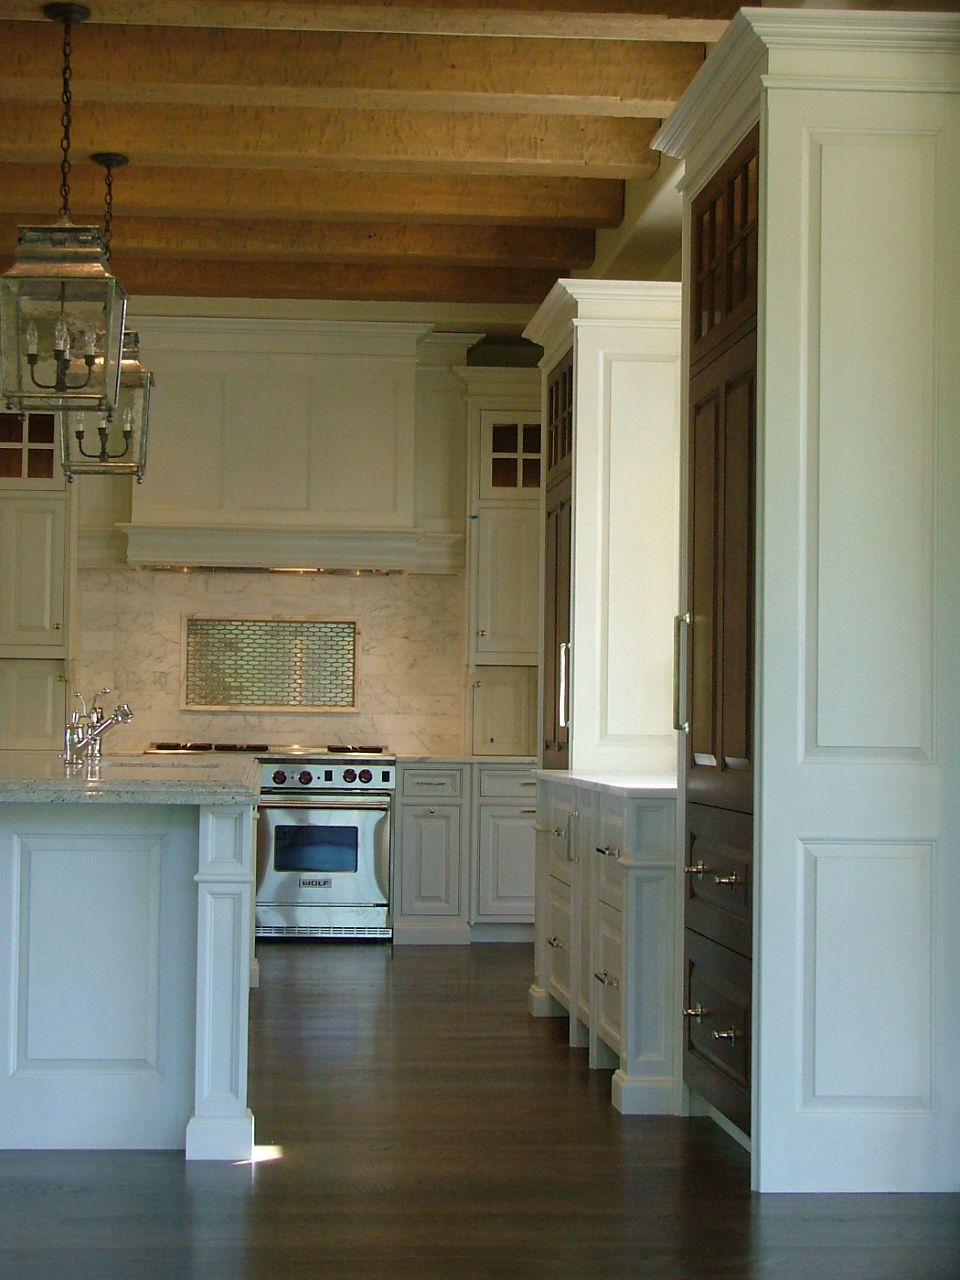 Westwood Cabinetry And Millwork Columbus Ohio Westwoodcabinetry Com Cabinetry Kitchen Cabinets Millwork